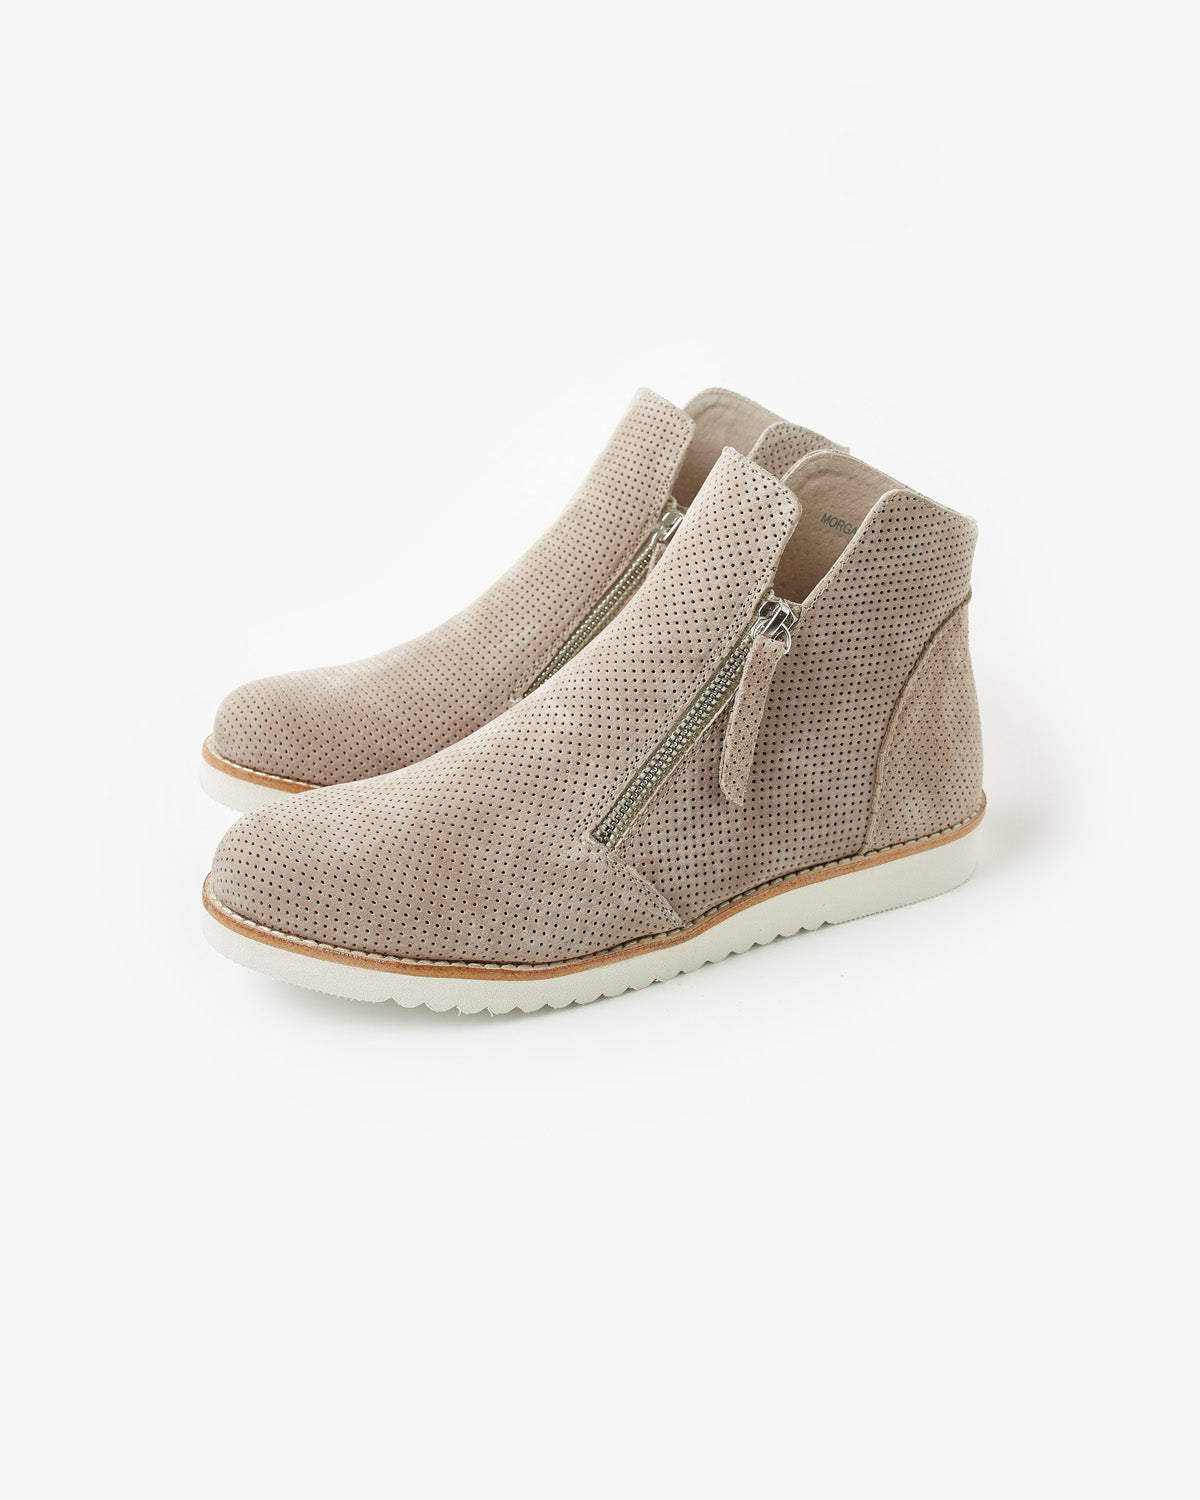 Morgan Leather Boot - Taupe Nubuck